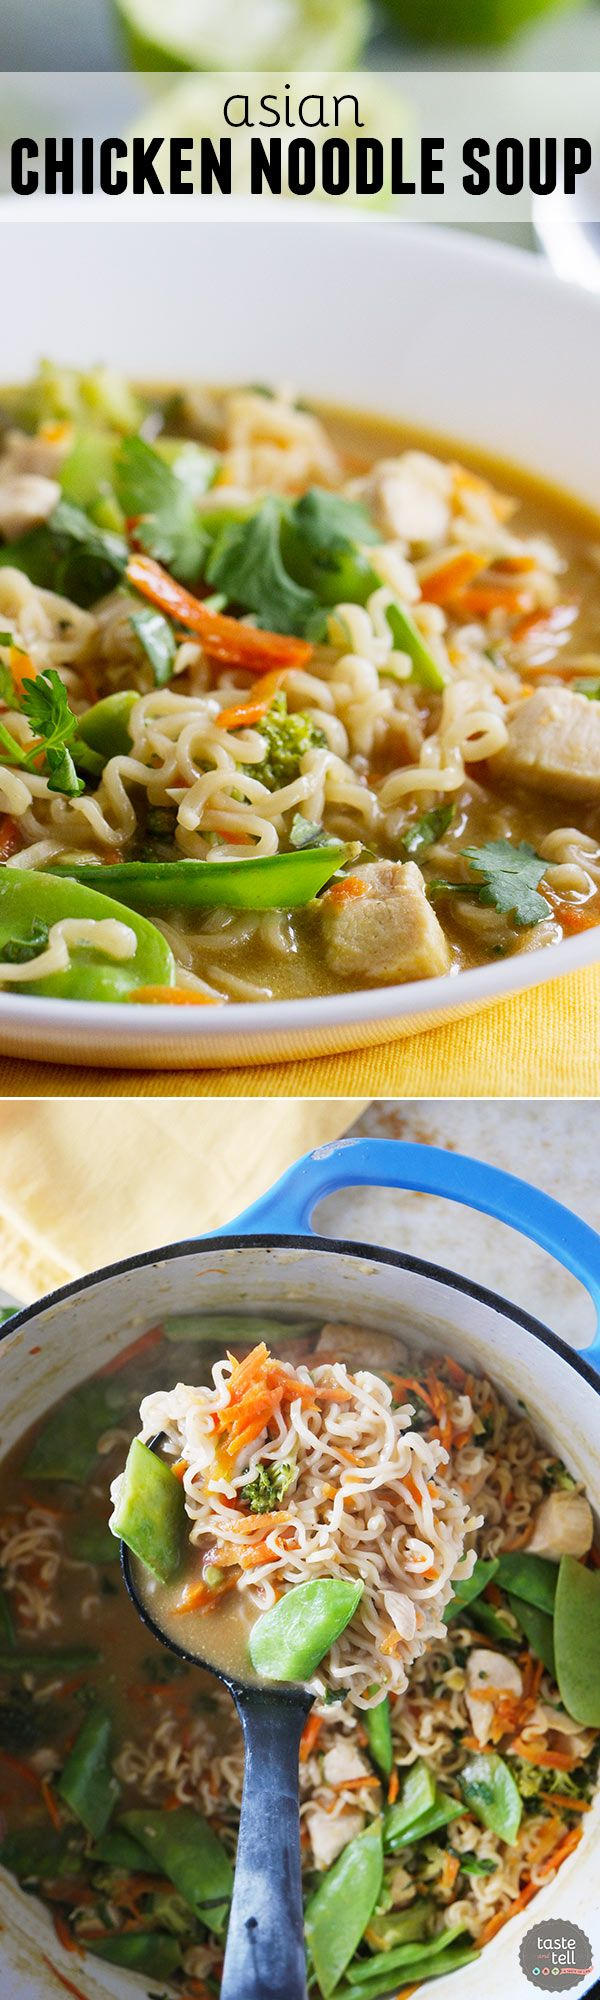 Not your normal chicken noodle soup, this Asian Chicken Noodle Soup combines chicken, lots of veggies and ramen noodles in an Asian-inspired broth. This is a sure way to warm your belly!: